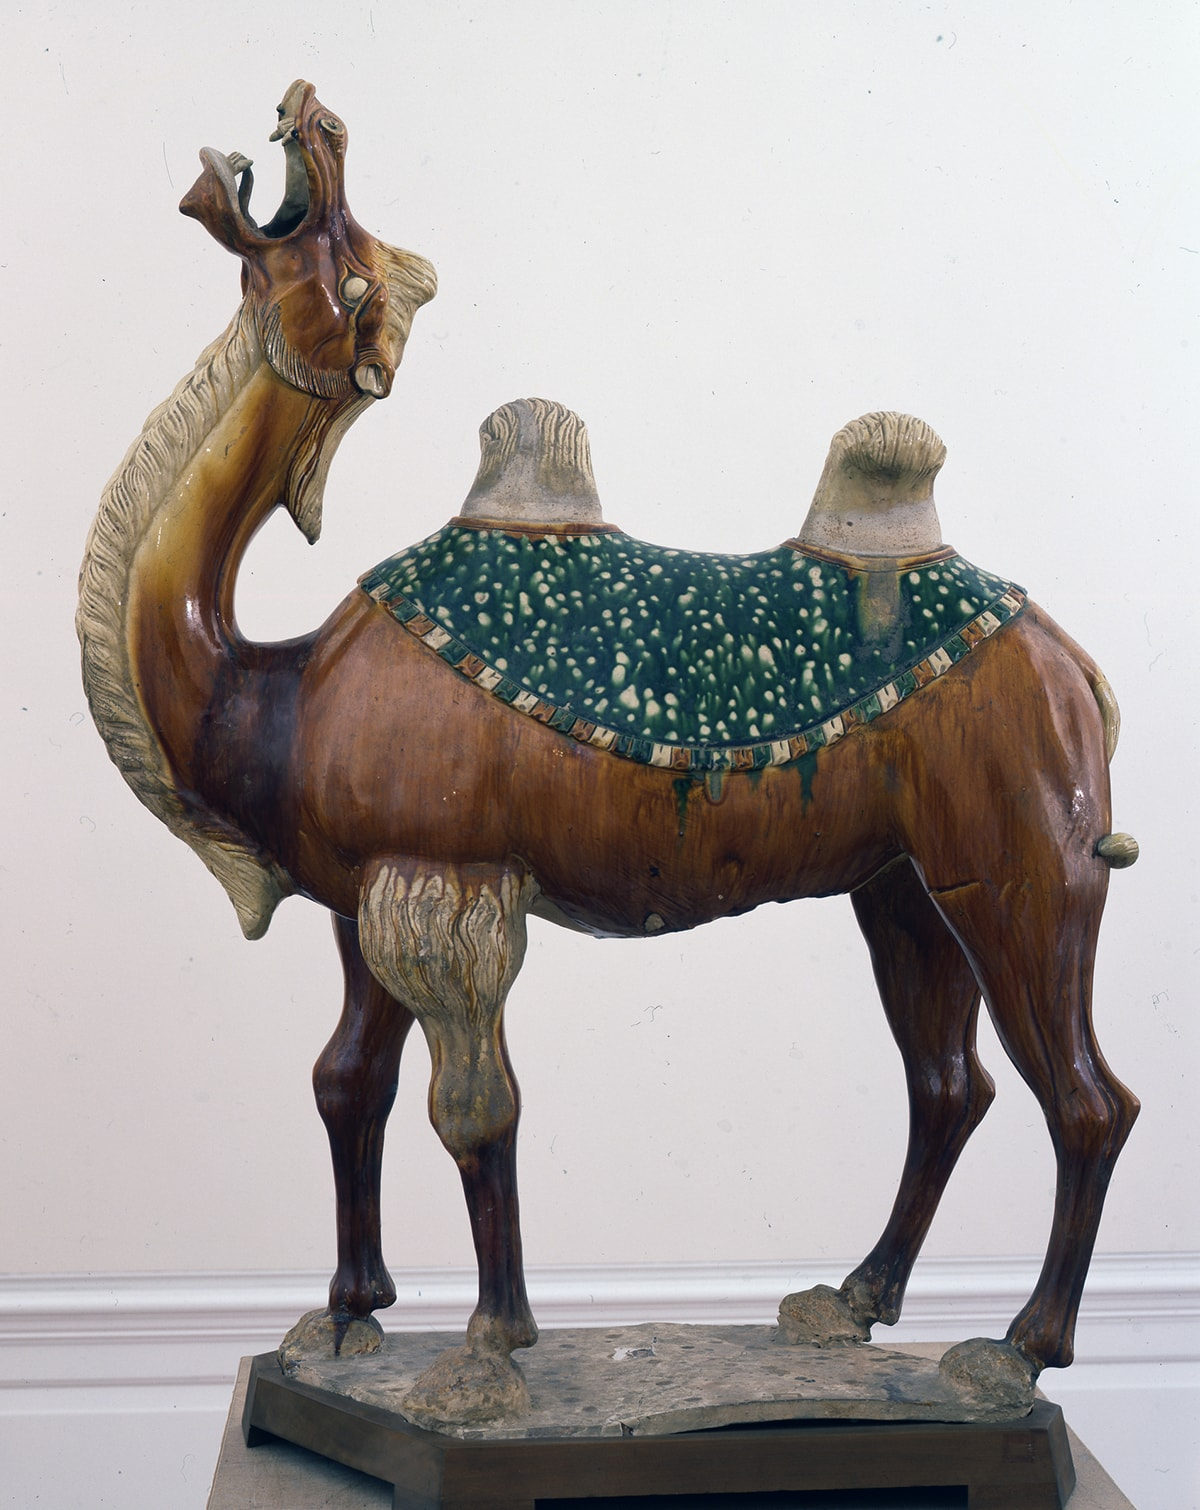 Sculpture of a camel viewed in profile facing left, its head thrown back, with mouth open, teeth and tongue visible. It has a small ear and round beige colored eye opened wide. All four legs are visible from the side view; the legs behind one step ahead of those closest to the viewer. Its body, neck, and head are smooth and are glazed in medium to light brown tones. In some areas the glazing appears streaky and drippy; a band of dark brown rings the camel's neck at its base. Deep incising creates longish, shaggy fur in a creamy beige color on the camel's head, mane, and underside of the neck running down to its torso. A deep green blanket in the shape of a half circle covers the camel's back. Two furry textured humps protrude through two openings of the blanket. A multitude of creamy beige dots decorate the blanket and appear runny on the green background. It is edged with a fringe alternating between dark brown, creamy beige, and deep green. The camel's foreleg has tufts of creamy beige, shaggy fur at the top. The camel stands on sturdy looking, knobbly legs ending in large wide hooves that appear rough and unglazed and are attached to an uneven, rough, unglazed, rectangular base resting on a modern wooden platform.